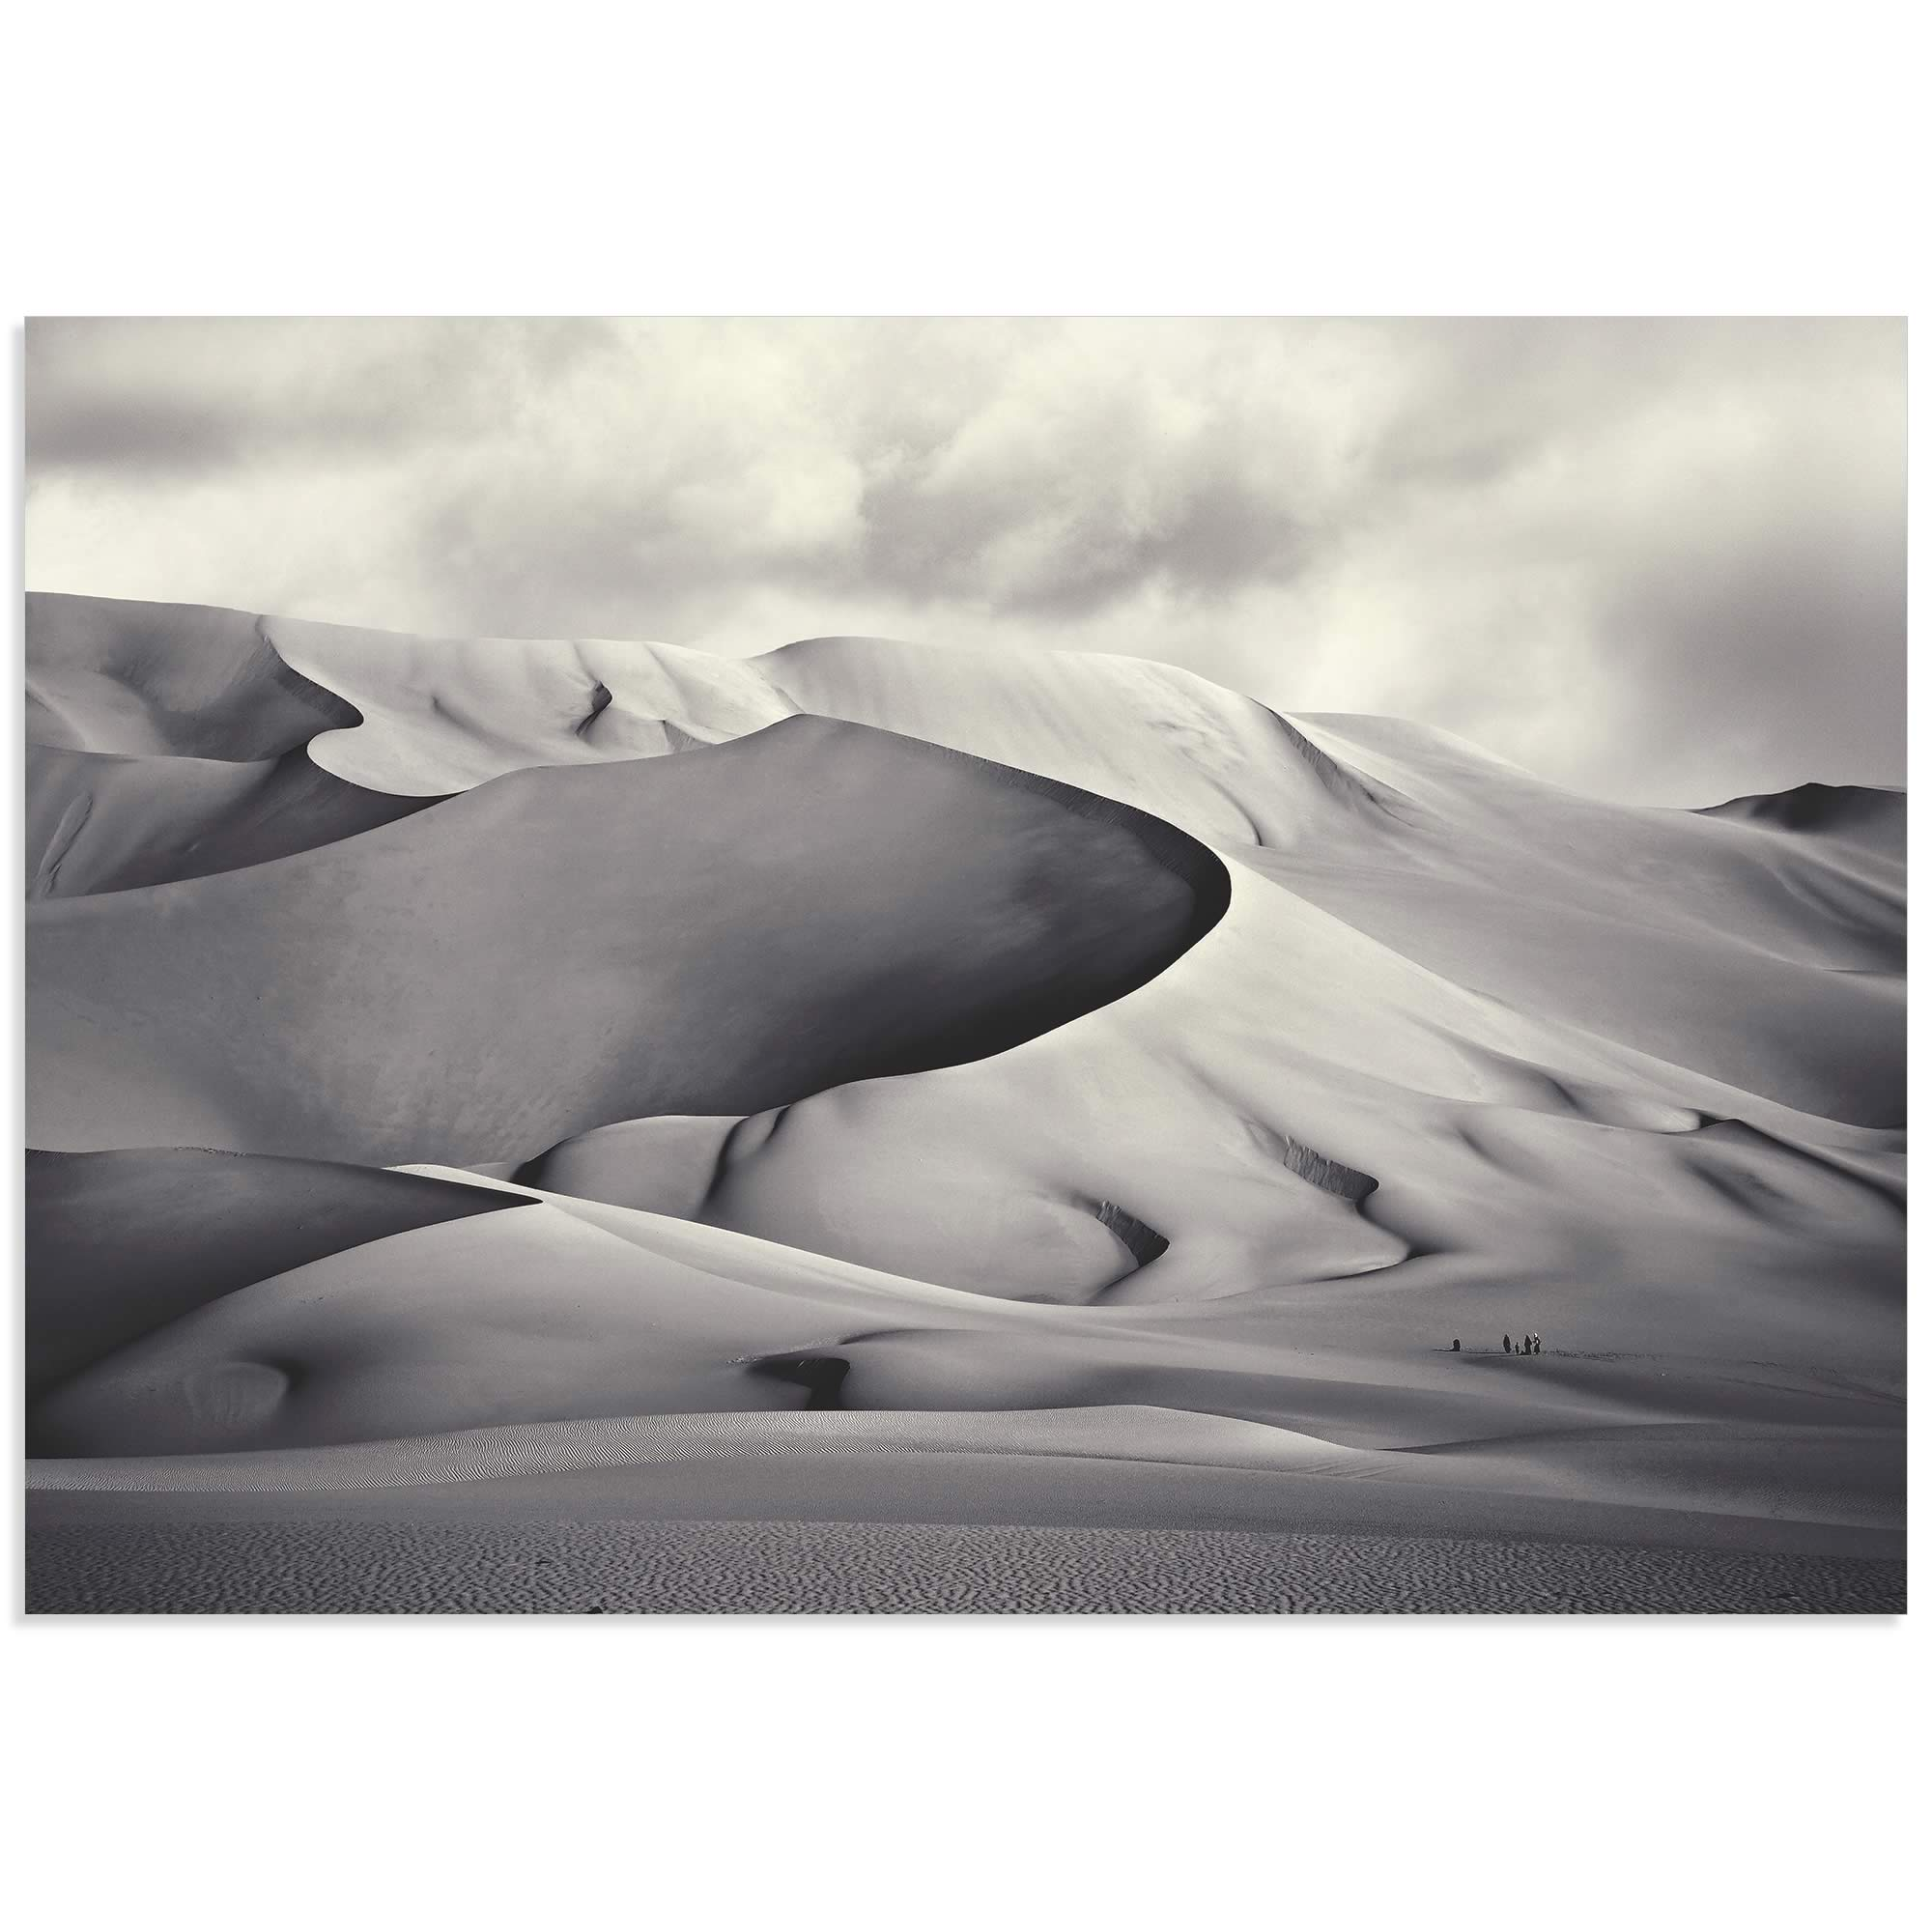 Desert Dunes by Manuel Vilches - Minimalist Photography on Metal or Acrylic